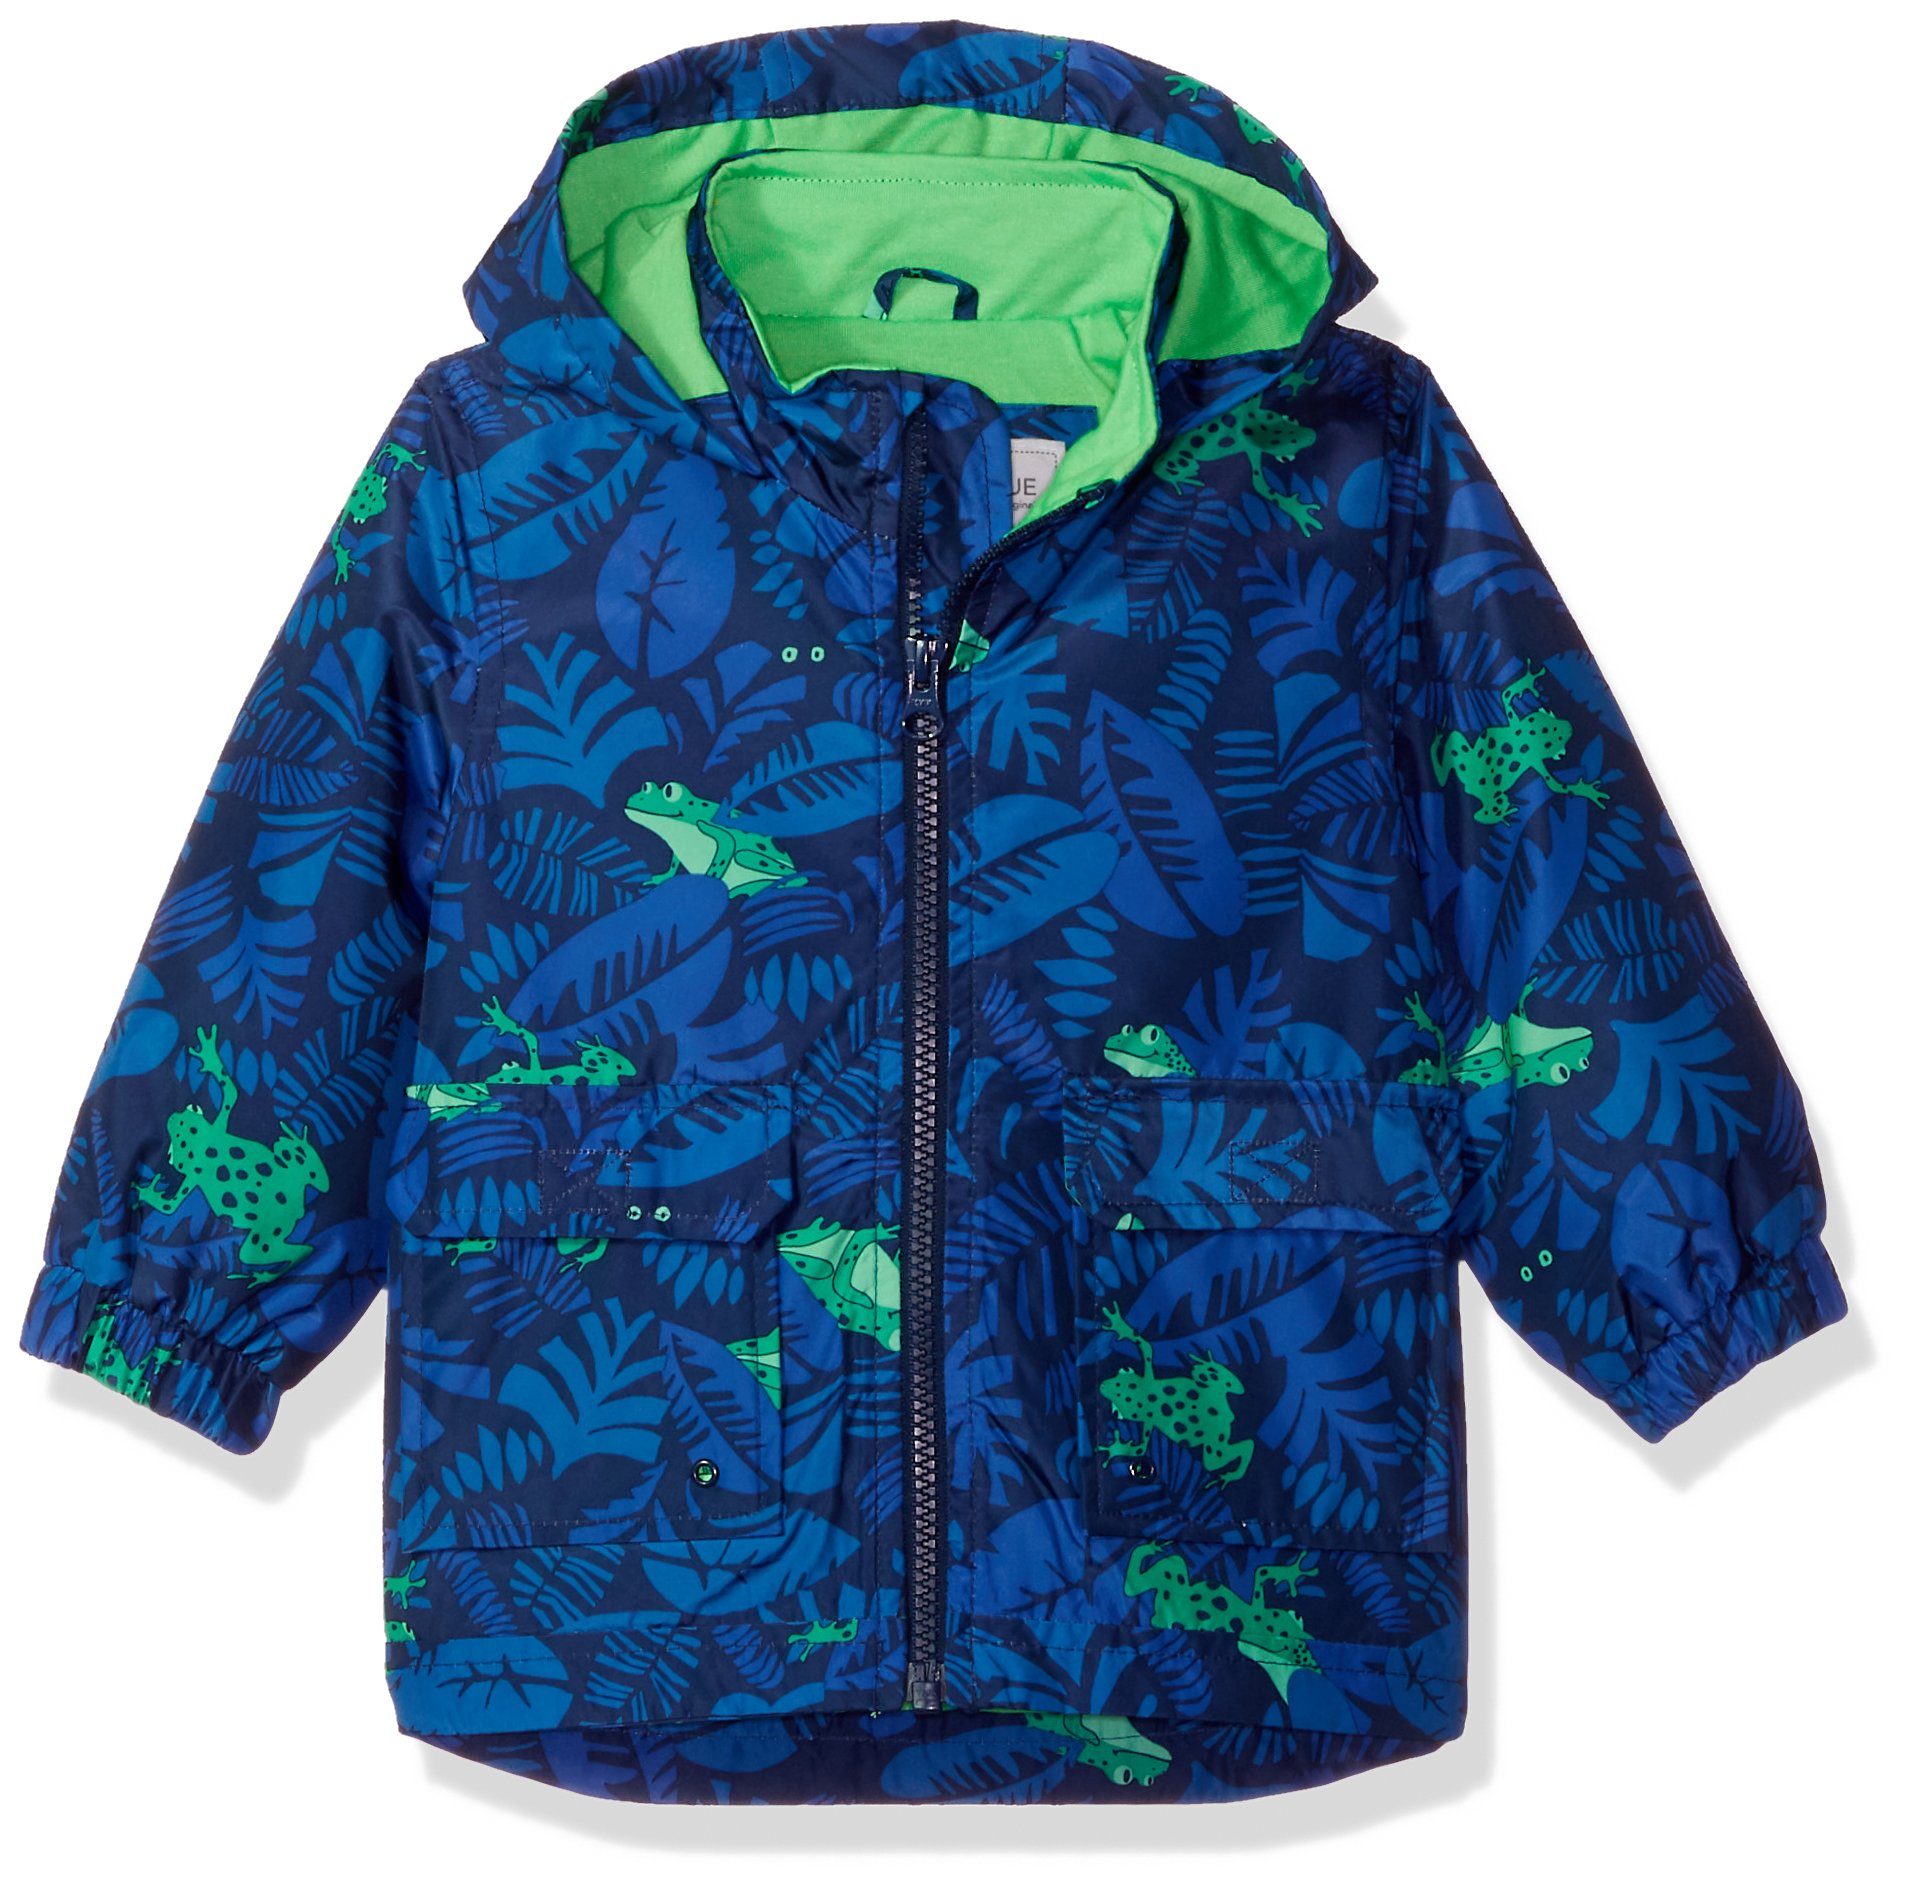 Carter's Baby Boys His Favorite Rainslicker Rain Jacket, Jungle Frog, 12M by Carter's